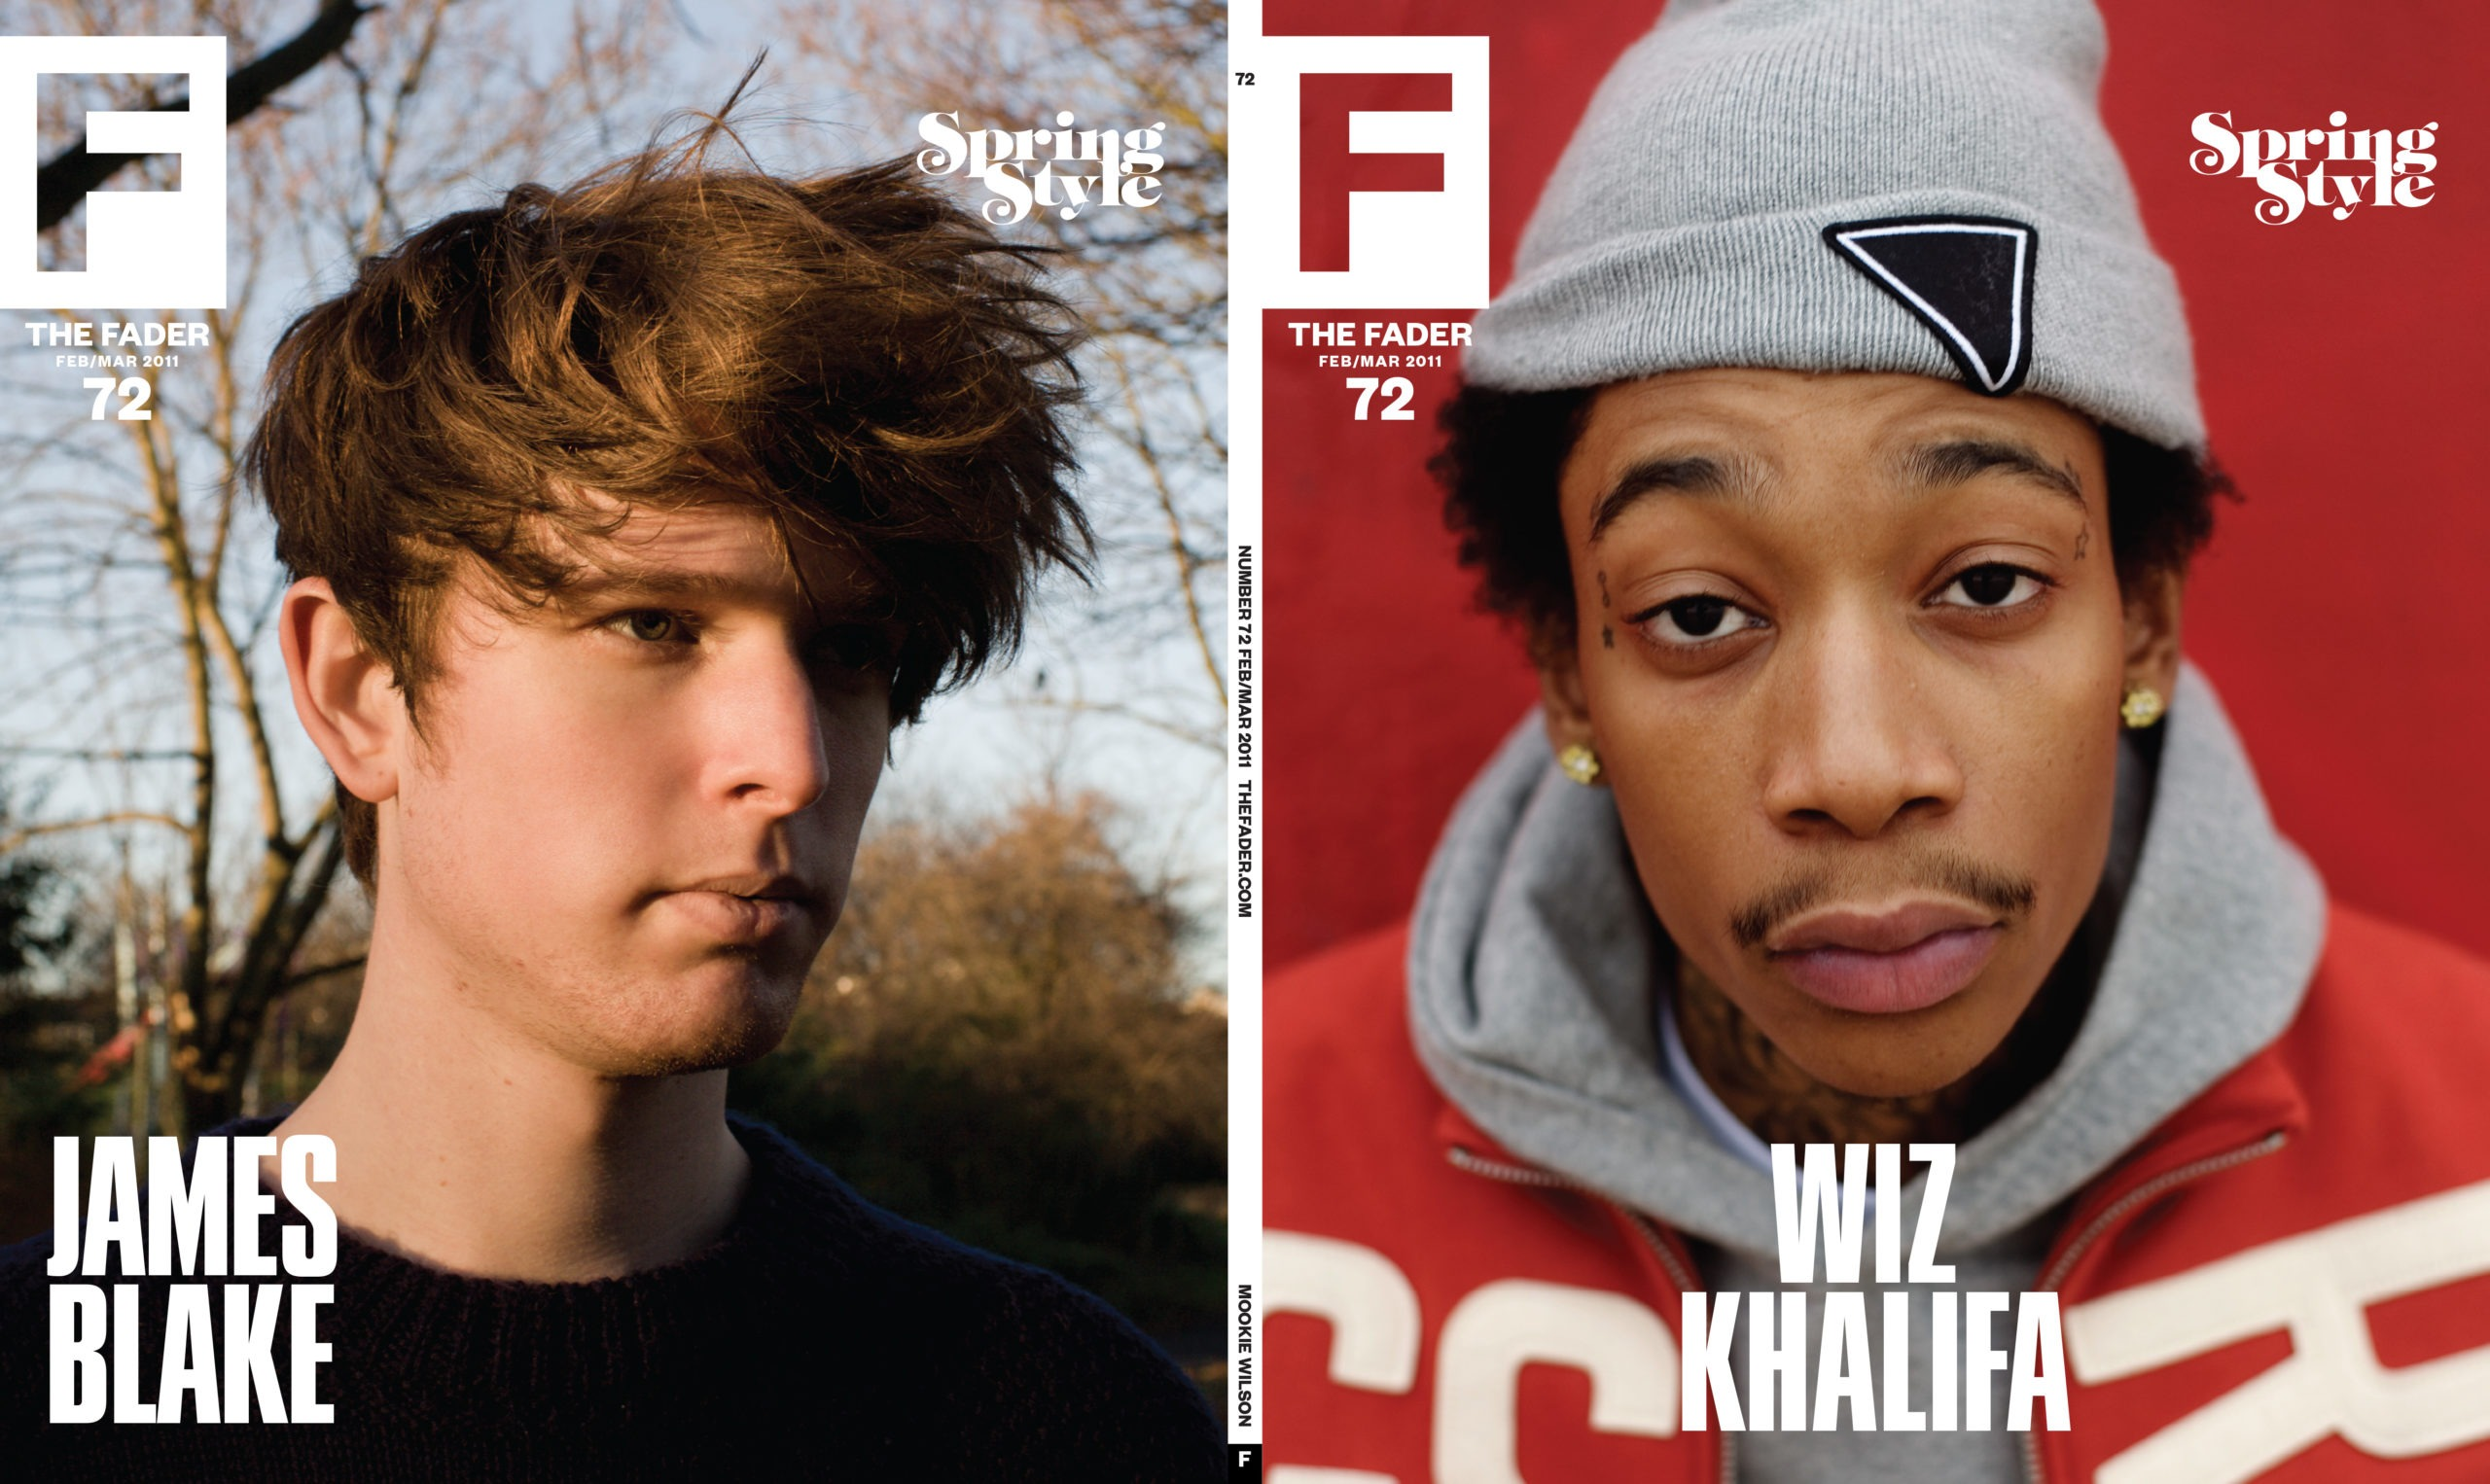 01_Cover41_Fader72